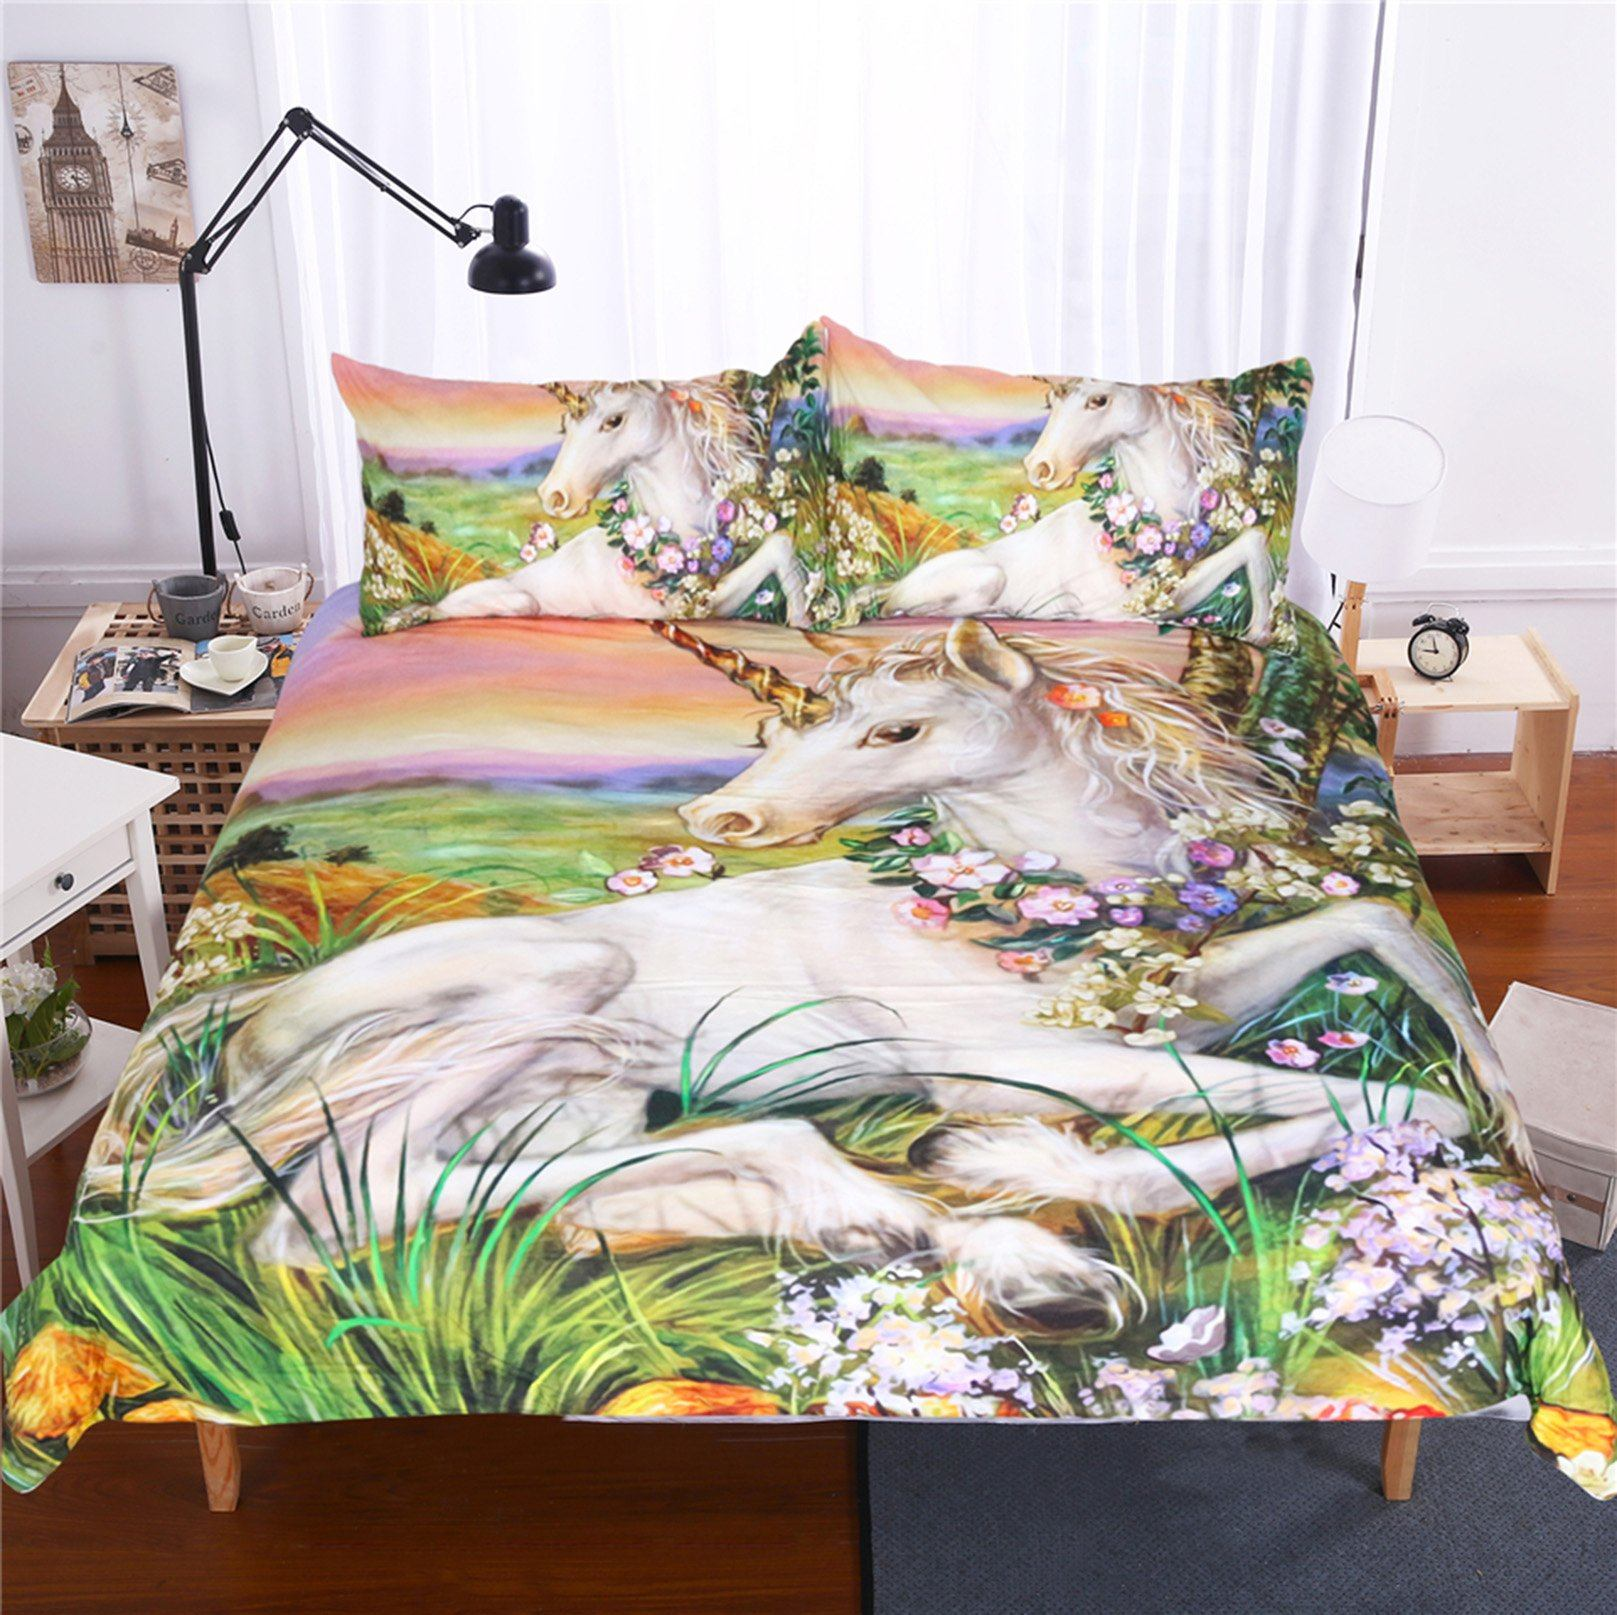 3D Oil Painting Unicorn 220 Bed Pillowcases Quilt Wallpaper AJ Wallpaper